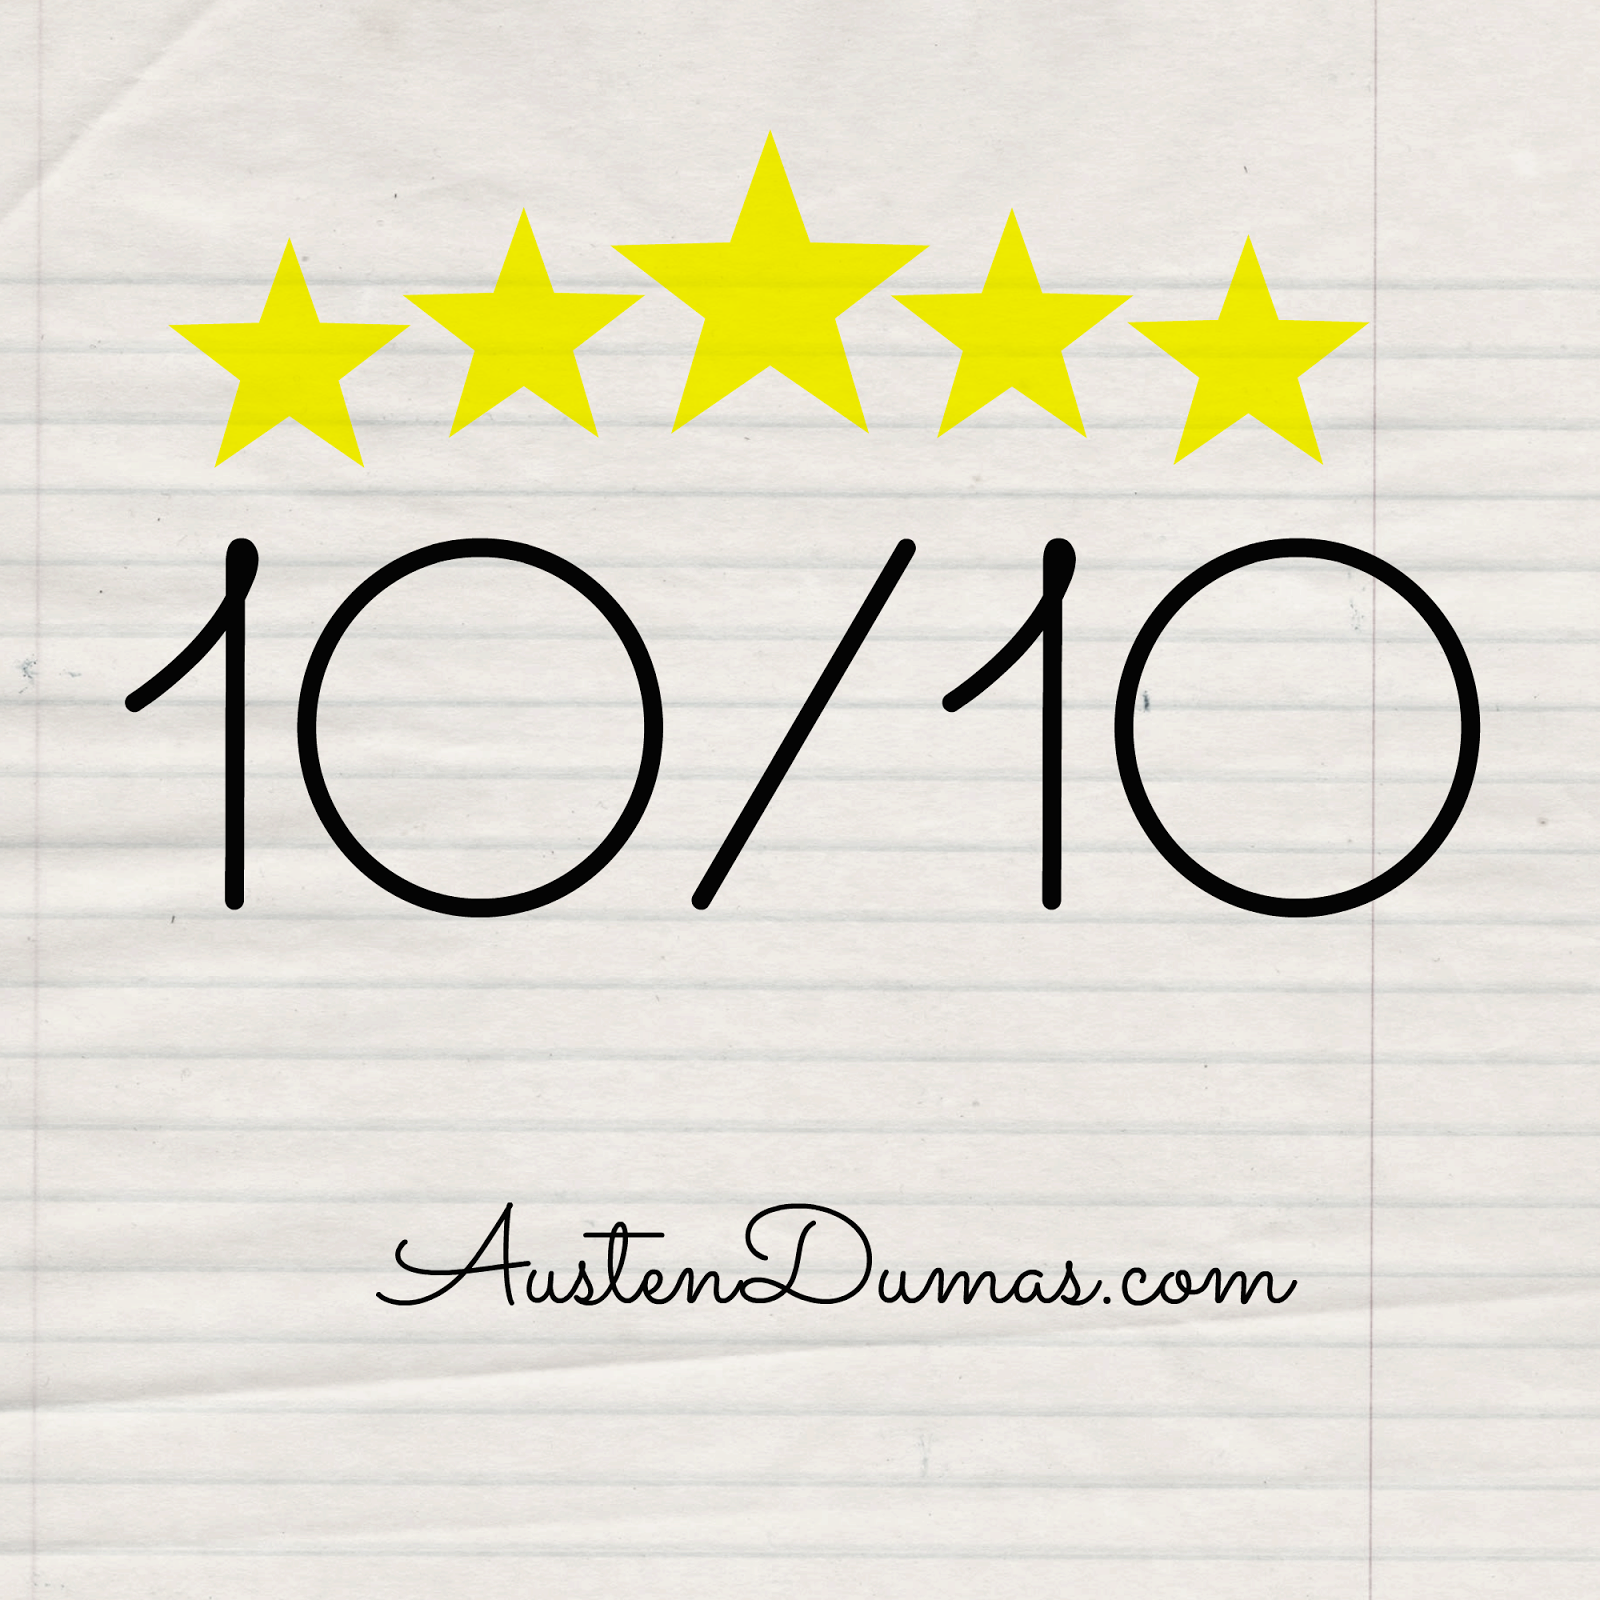 Austen Dumas Book Review Site Perfect Score for The Girl with the Dragon Tattoo by Stieg Larsson